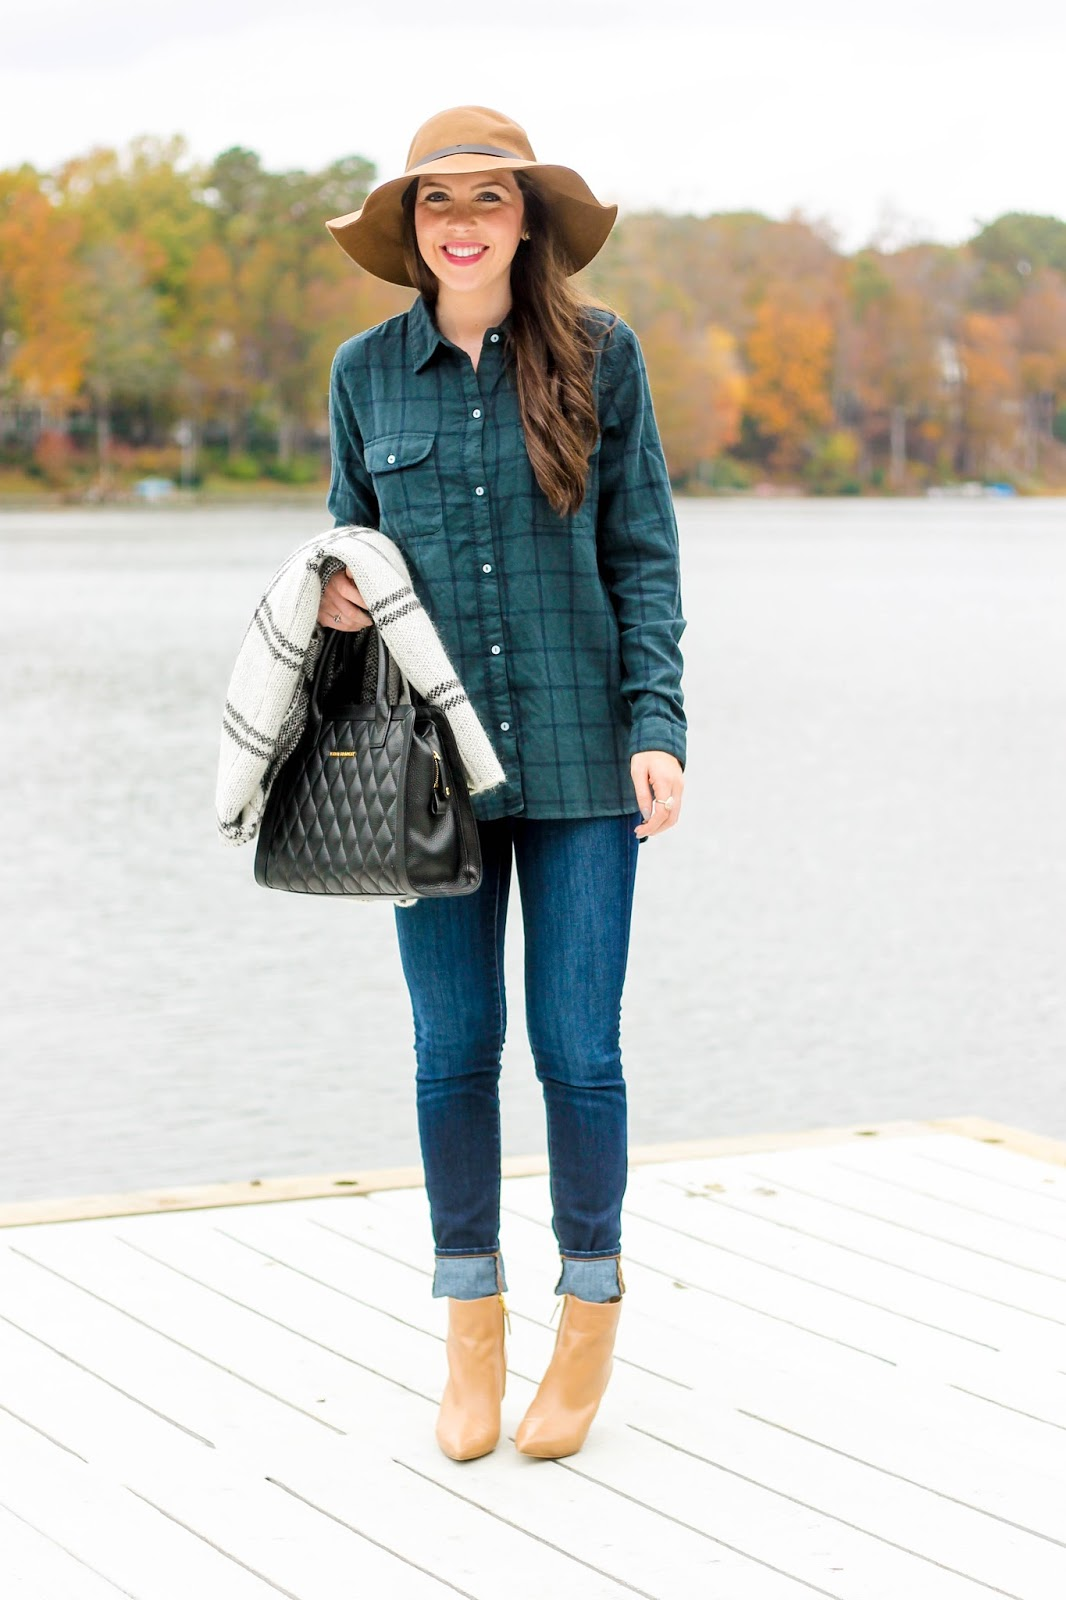 Plaid Shirt, Plaid Cape, Floppy Camel Hat, Fall Fashion, Fall Trends, Vera Bradley Quilted Natalie Satchel, Perfect Black Bag, Fall outfit, camel pointy toe booties, sam edelman booties, fall fashion, pretty in the pines, fashion blog, fashion blogger, lyon and post, sundry flannel, flannel shirts for women, thanksgiving outfit for women, cute thanksgiving outfit